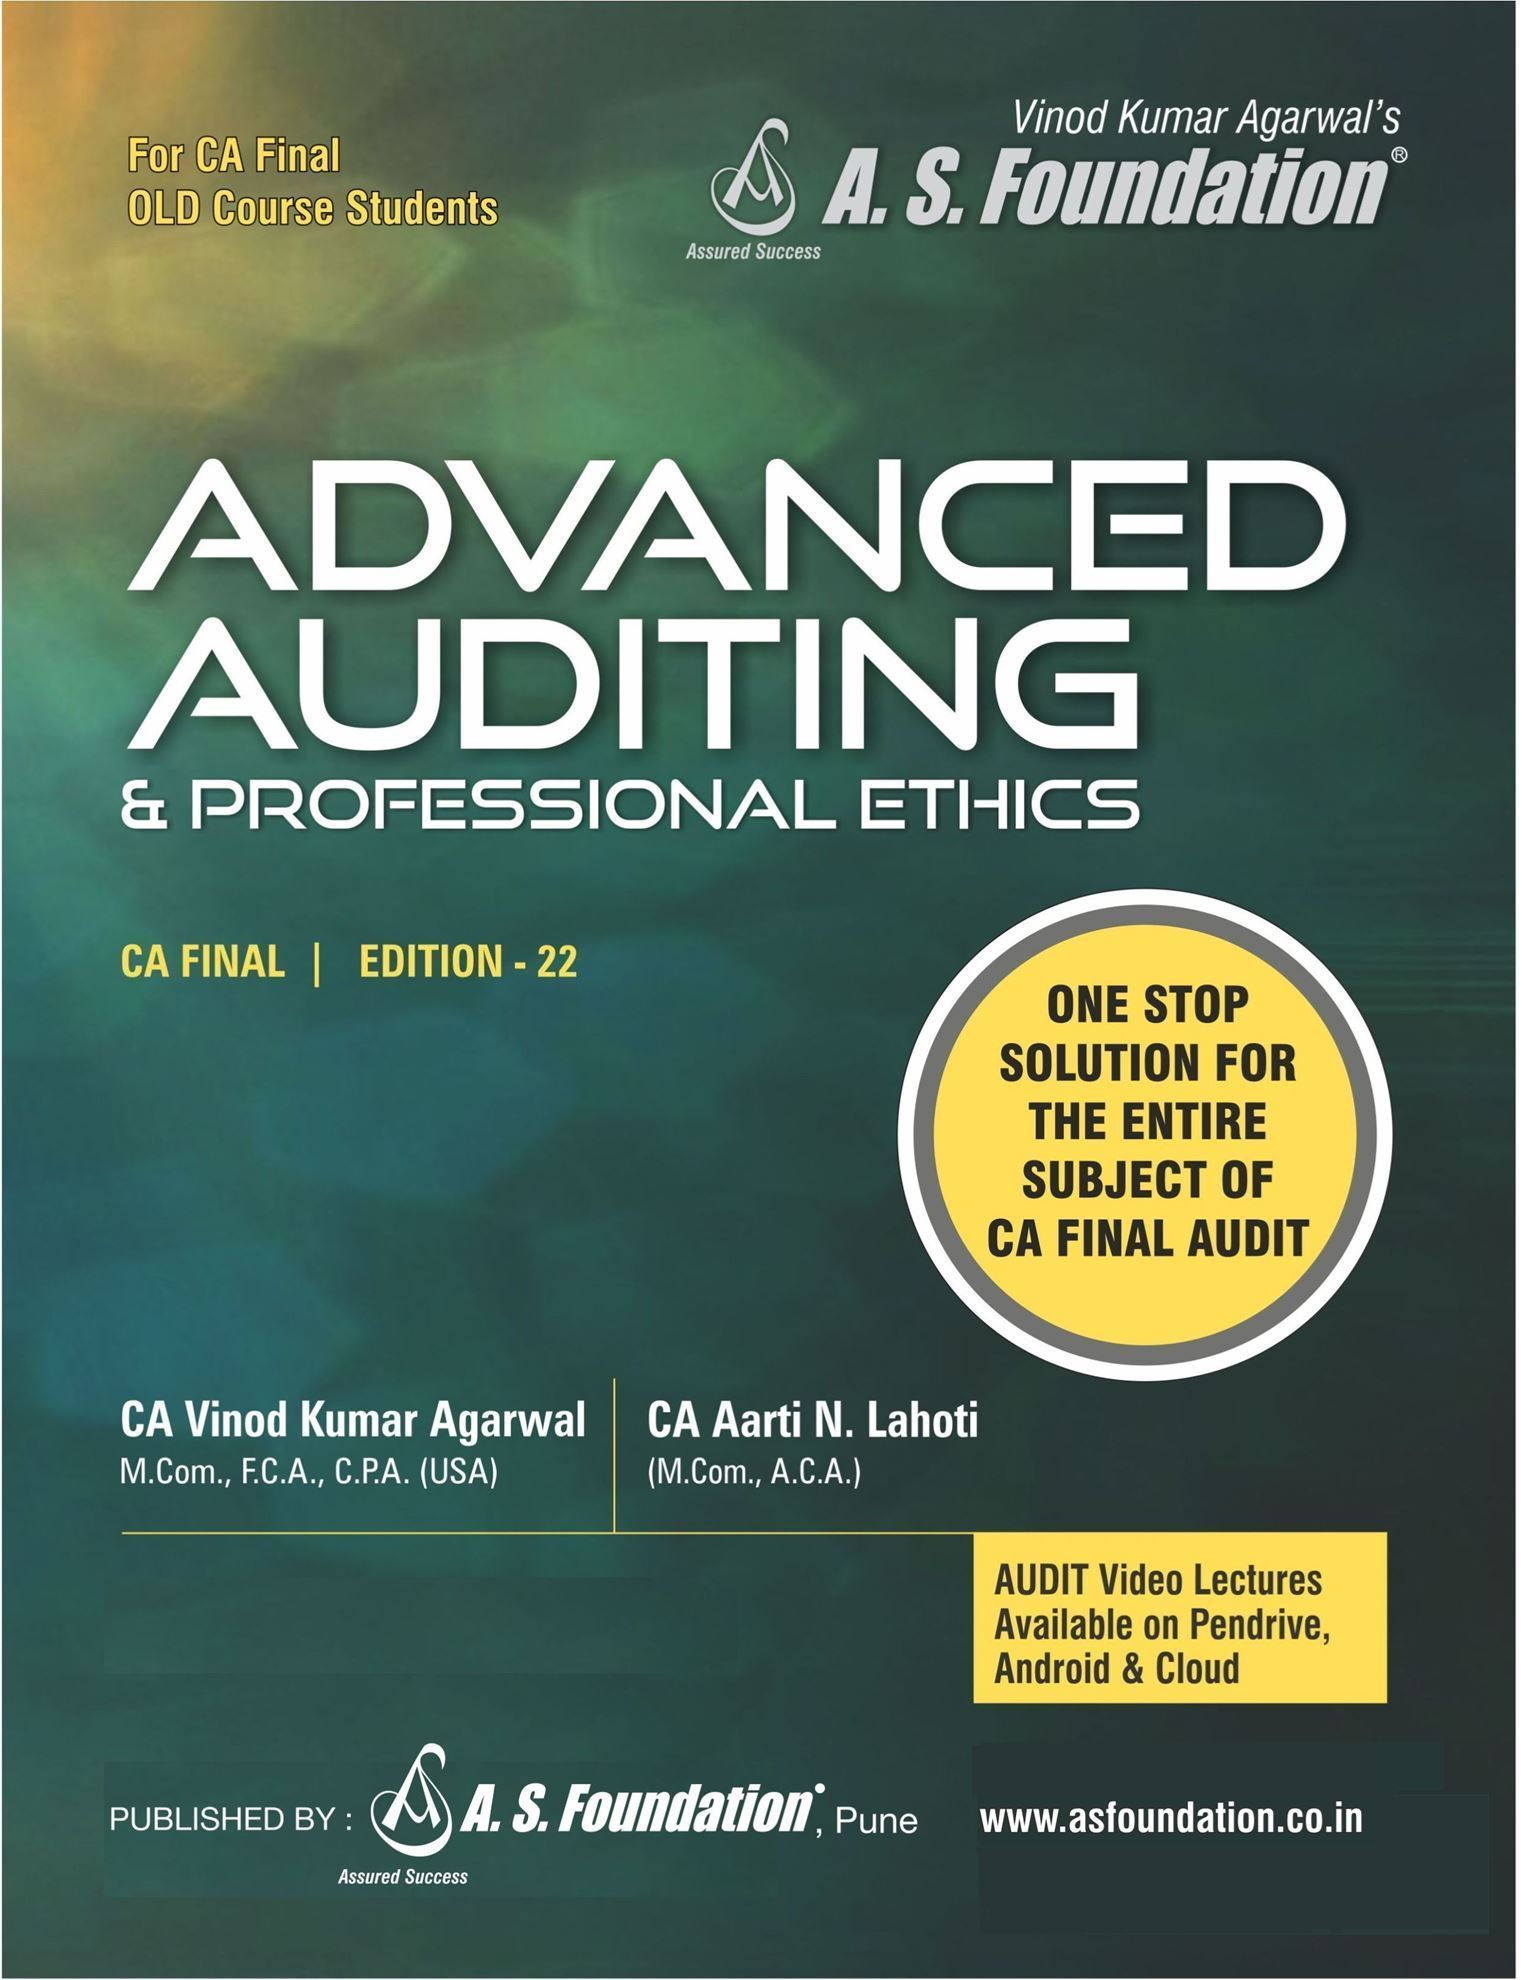 A.S Foundation ADVANCED AUDITING & PROFESSIONAL ETHICS  Old Syllabus For CA Final By Vinod Kumar Agarwal Applicable for Nov 2019 Exam